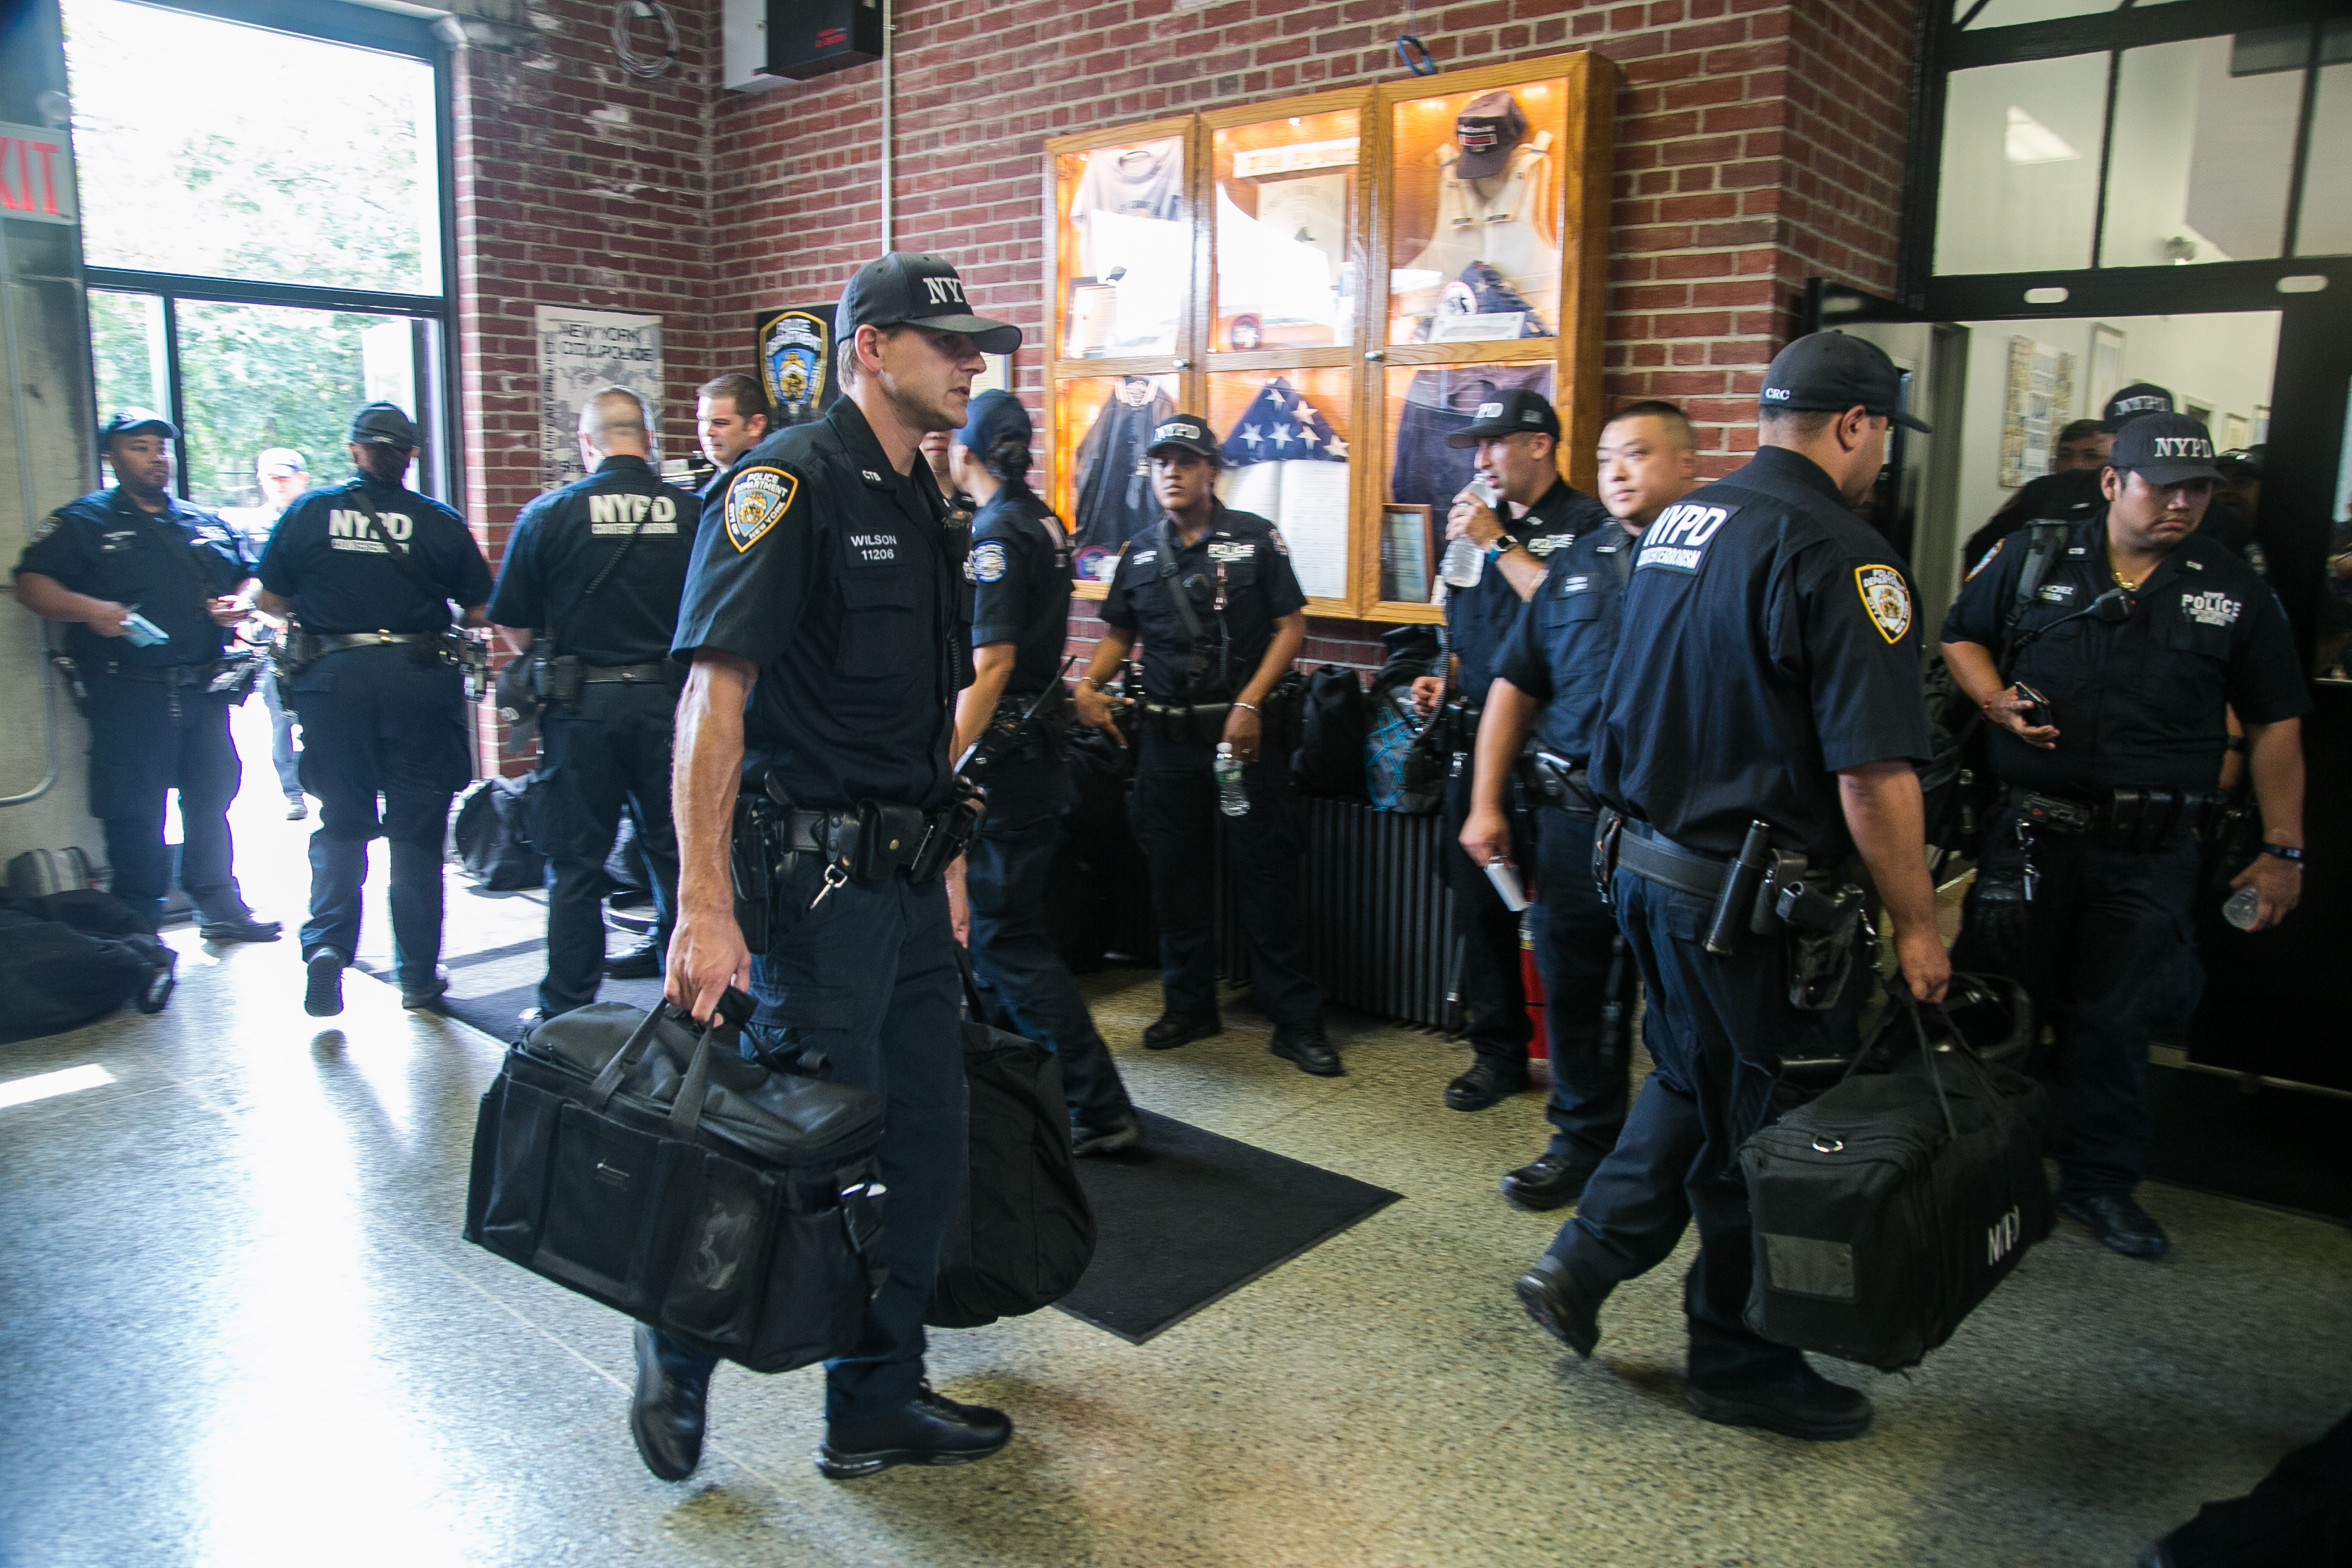 Officers of the NYPD Counterterrorism Bureau return from their shifts, while others prepare to start theirs, at their headquarters on Randall's Island in New York on Aug. 11, 2016. (Benjamin Chasteen/Epoch Times)